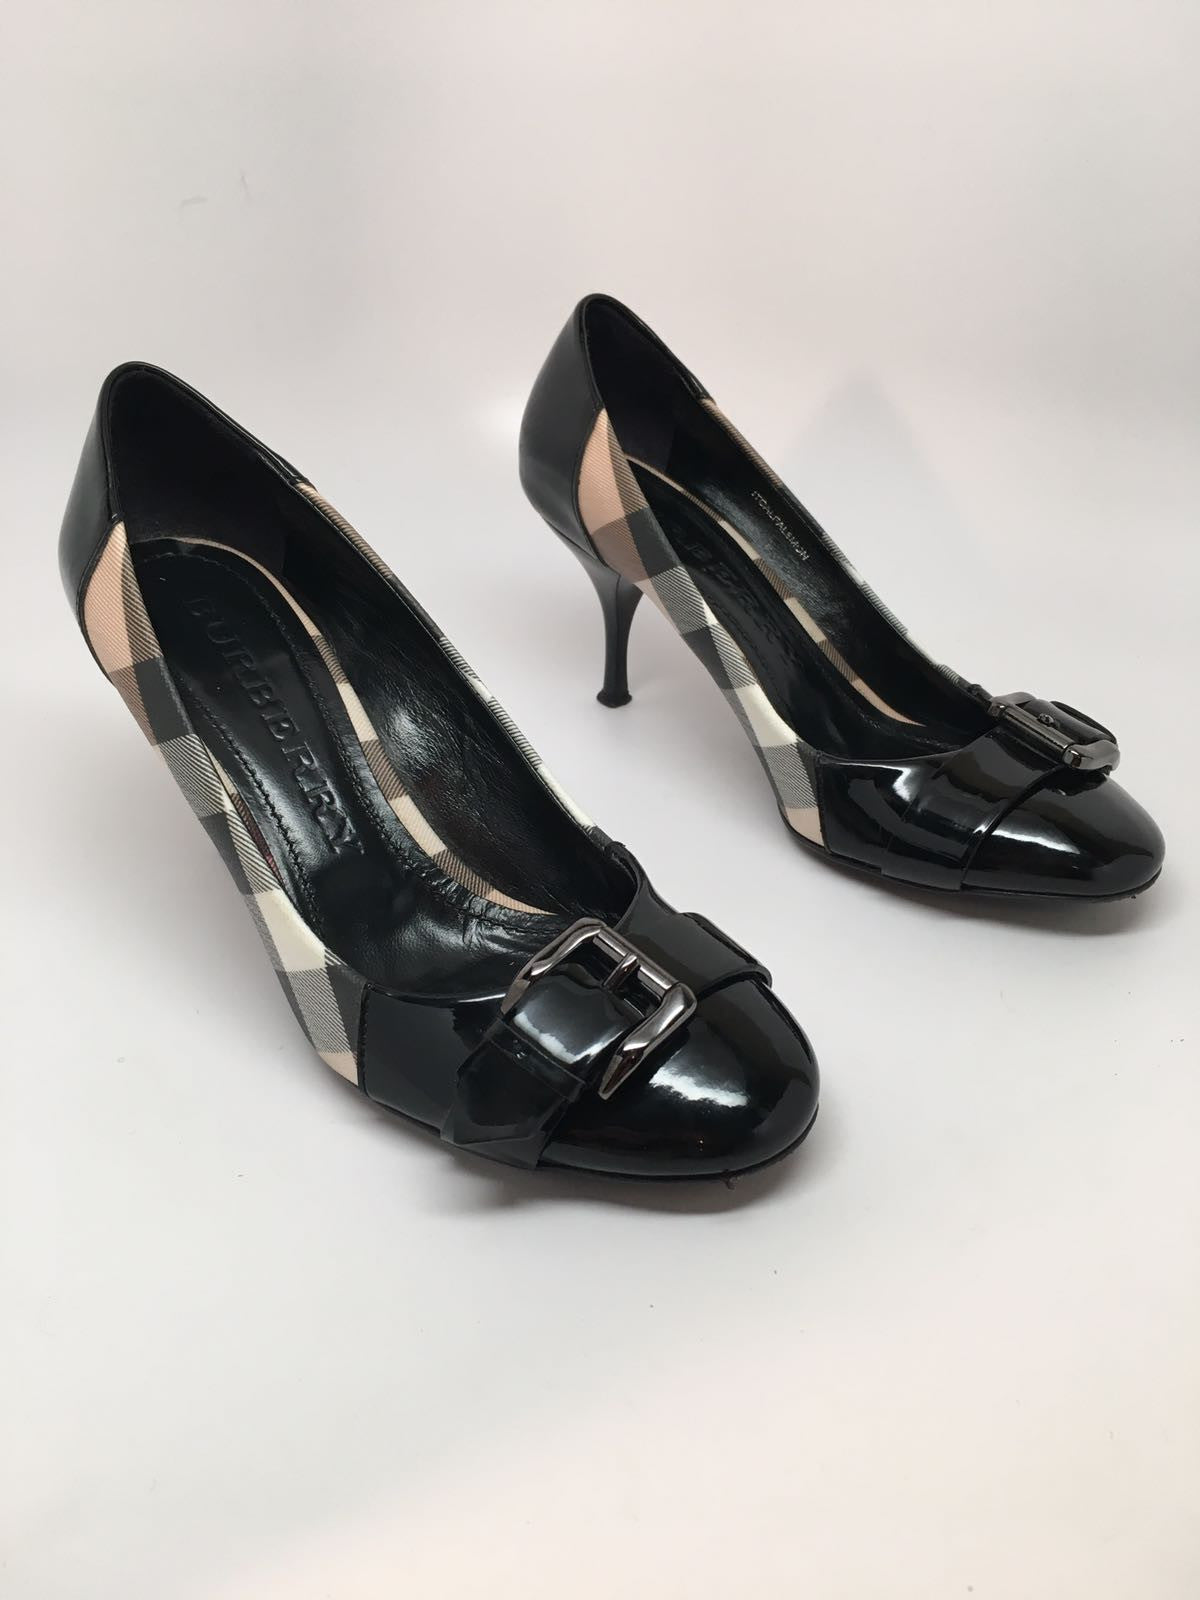 BURBERRY NOVA BUCKLE PUMP - SIZE 36